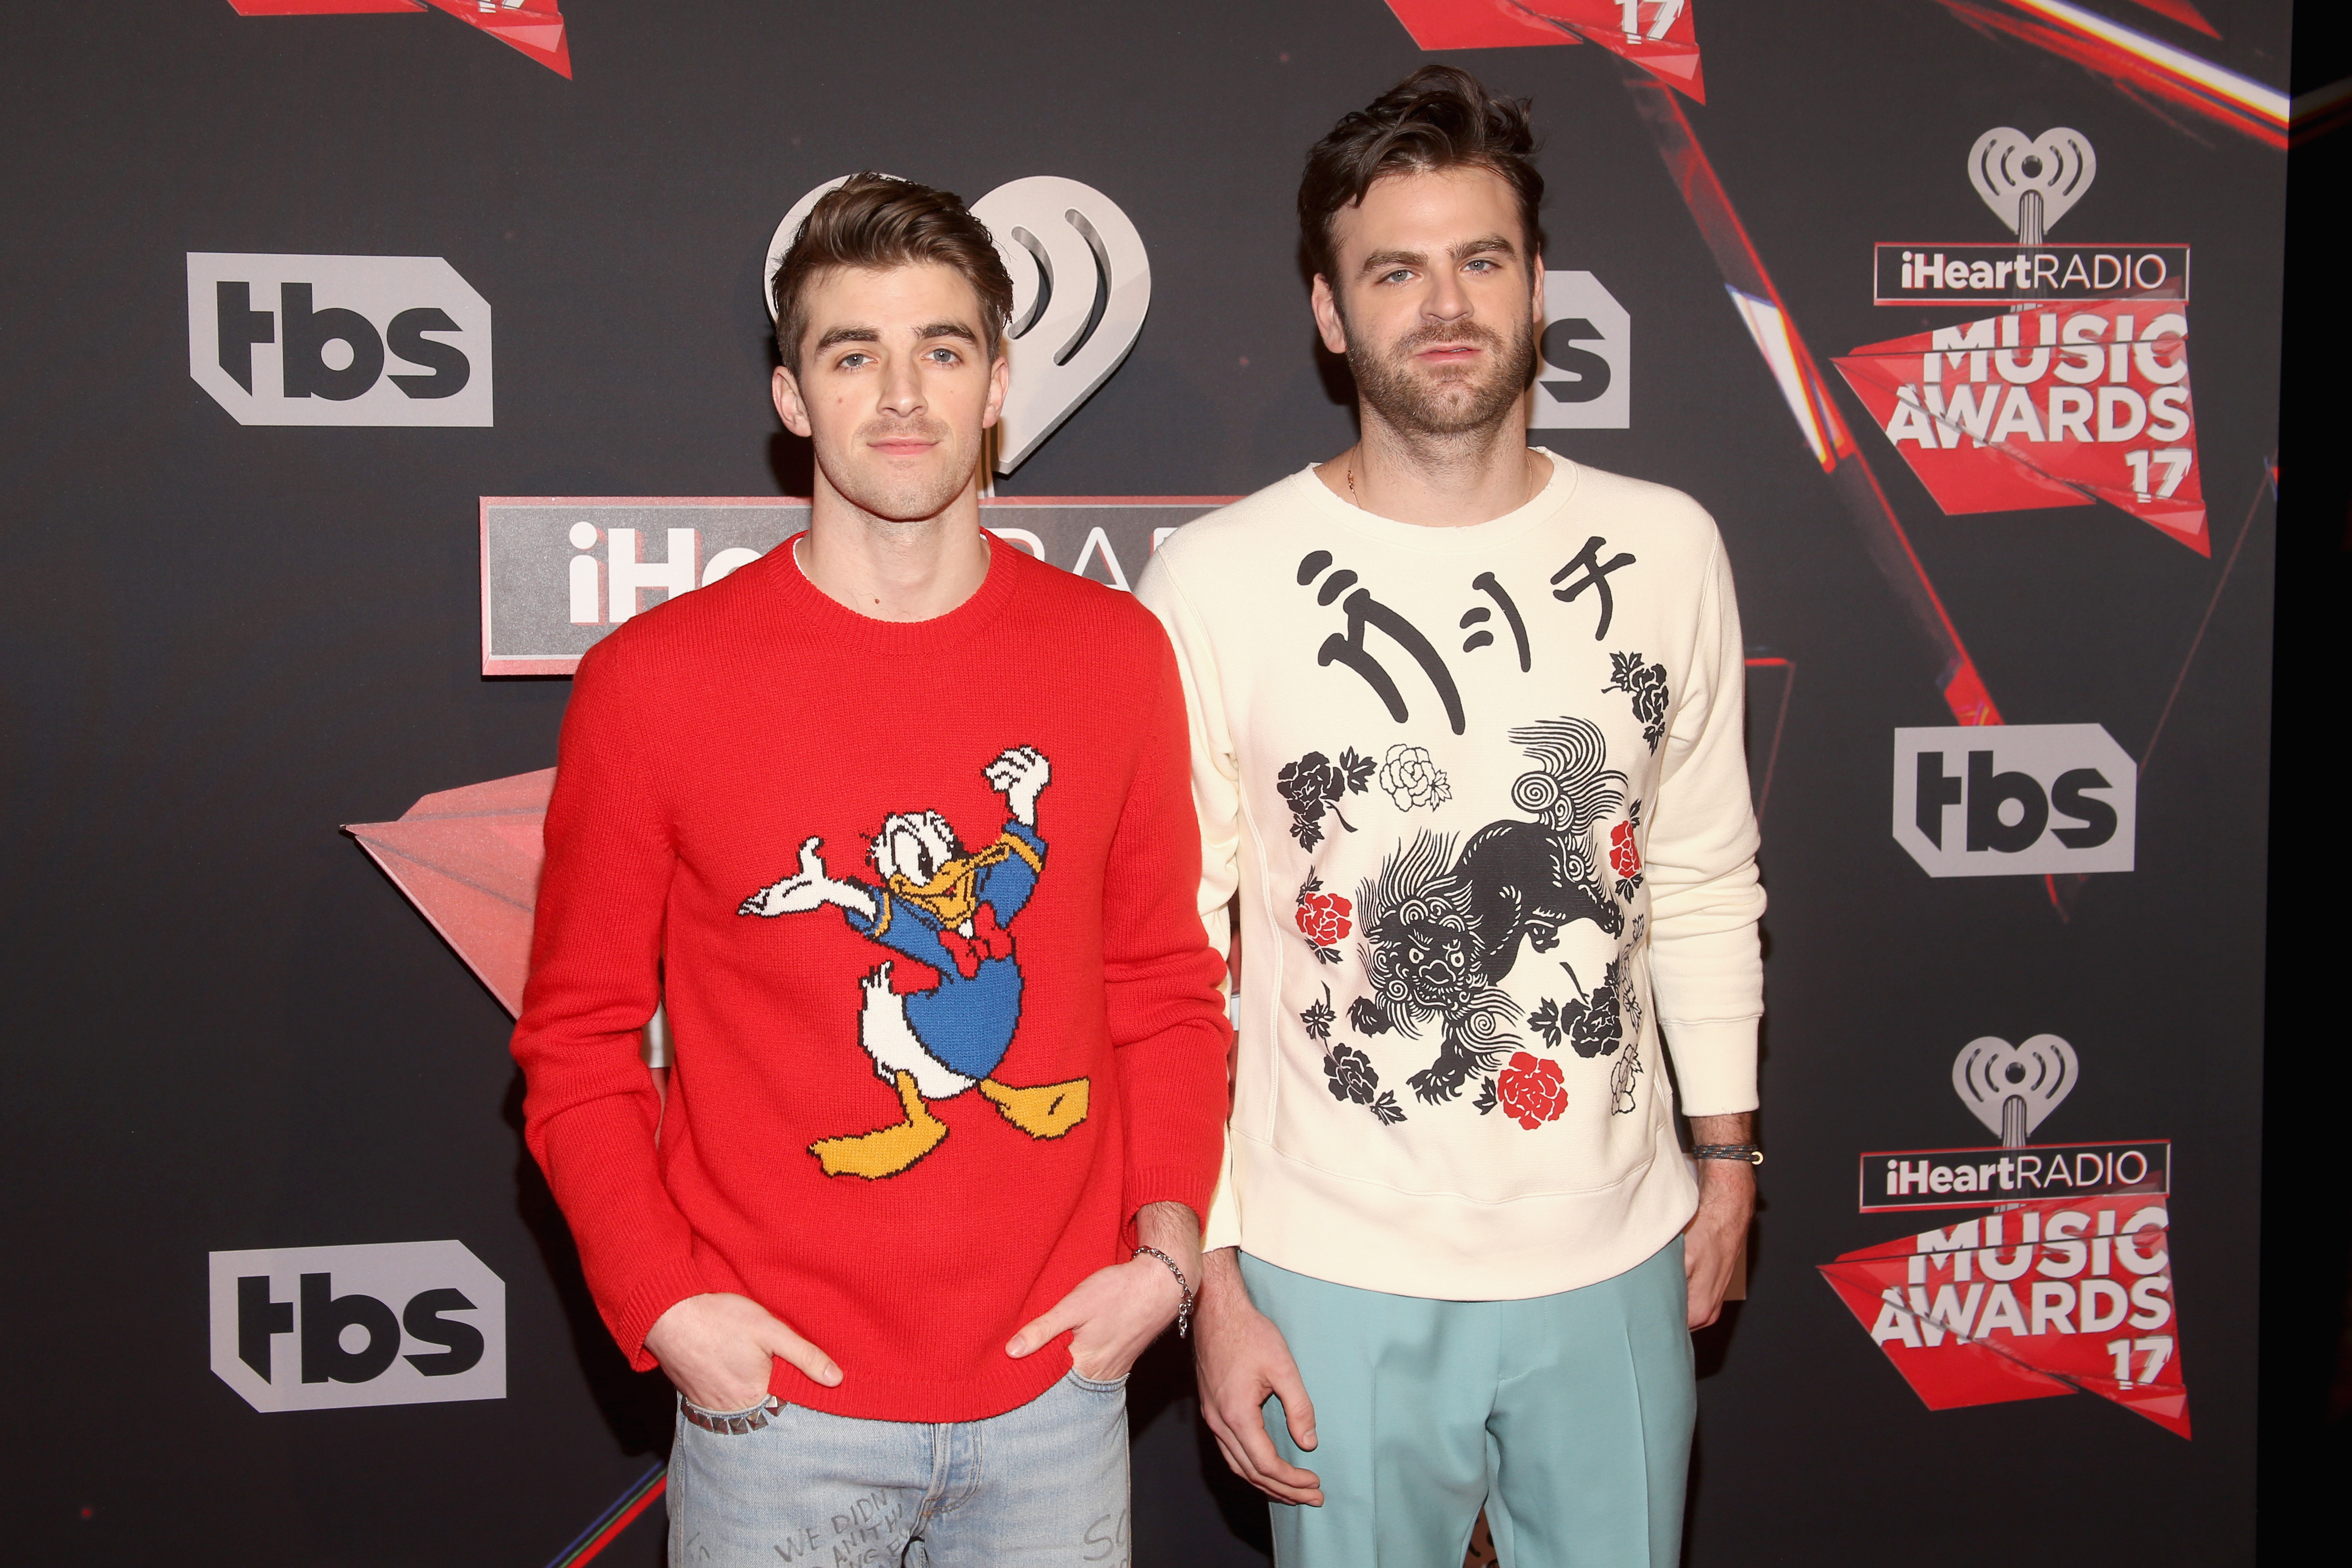 The Chainsmokers attend the 2017 iHeartRadio Music Awards in Inglewood, California. (Photo by Jesse Grant/Getty Images)